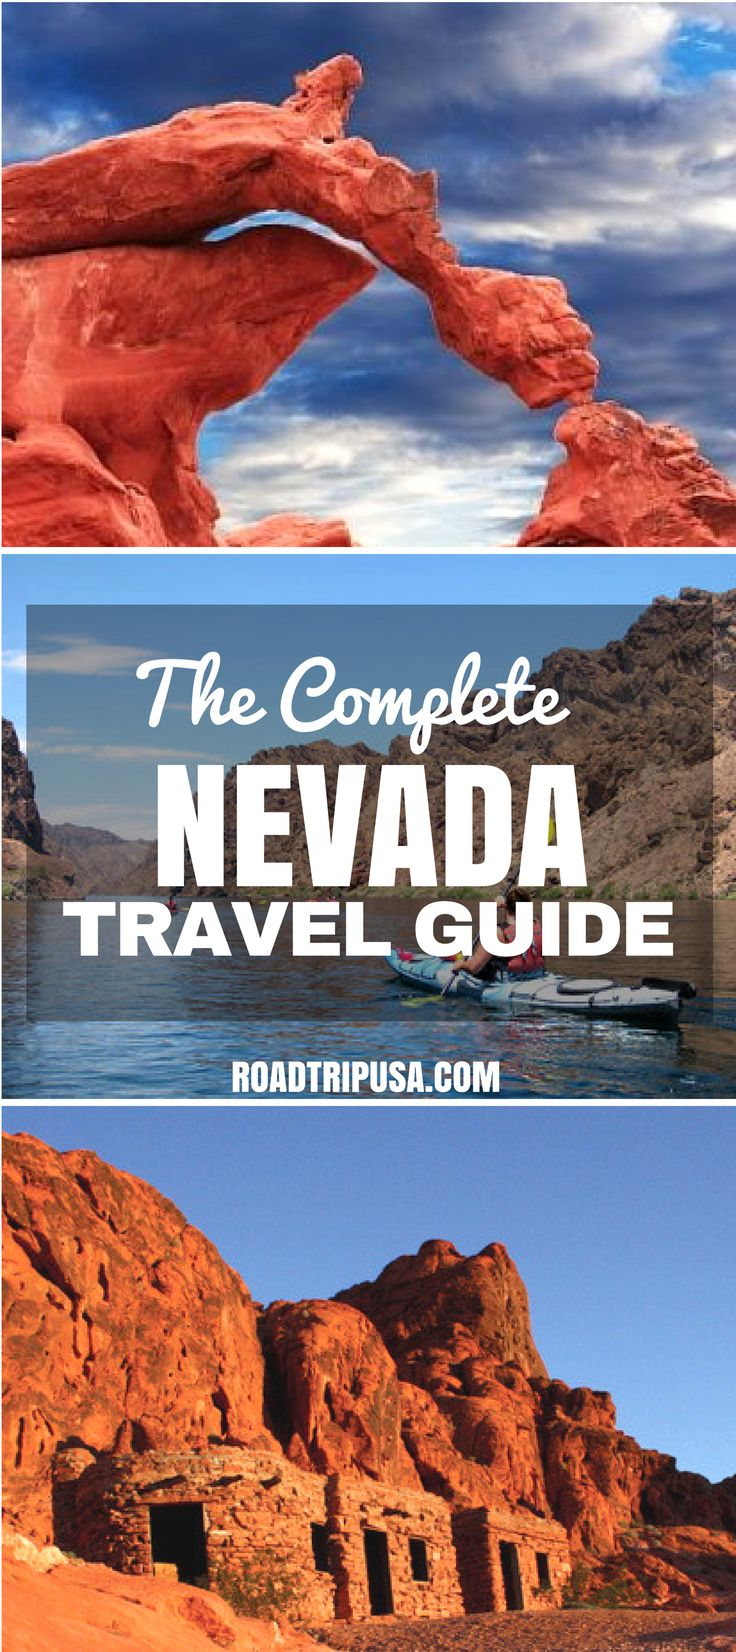 See Nevada's best natural attractions along with fun things you must do on your next trip! A complete guide to visiting this state with information on lodging, discounts, driving itineraries and tours.